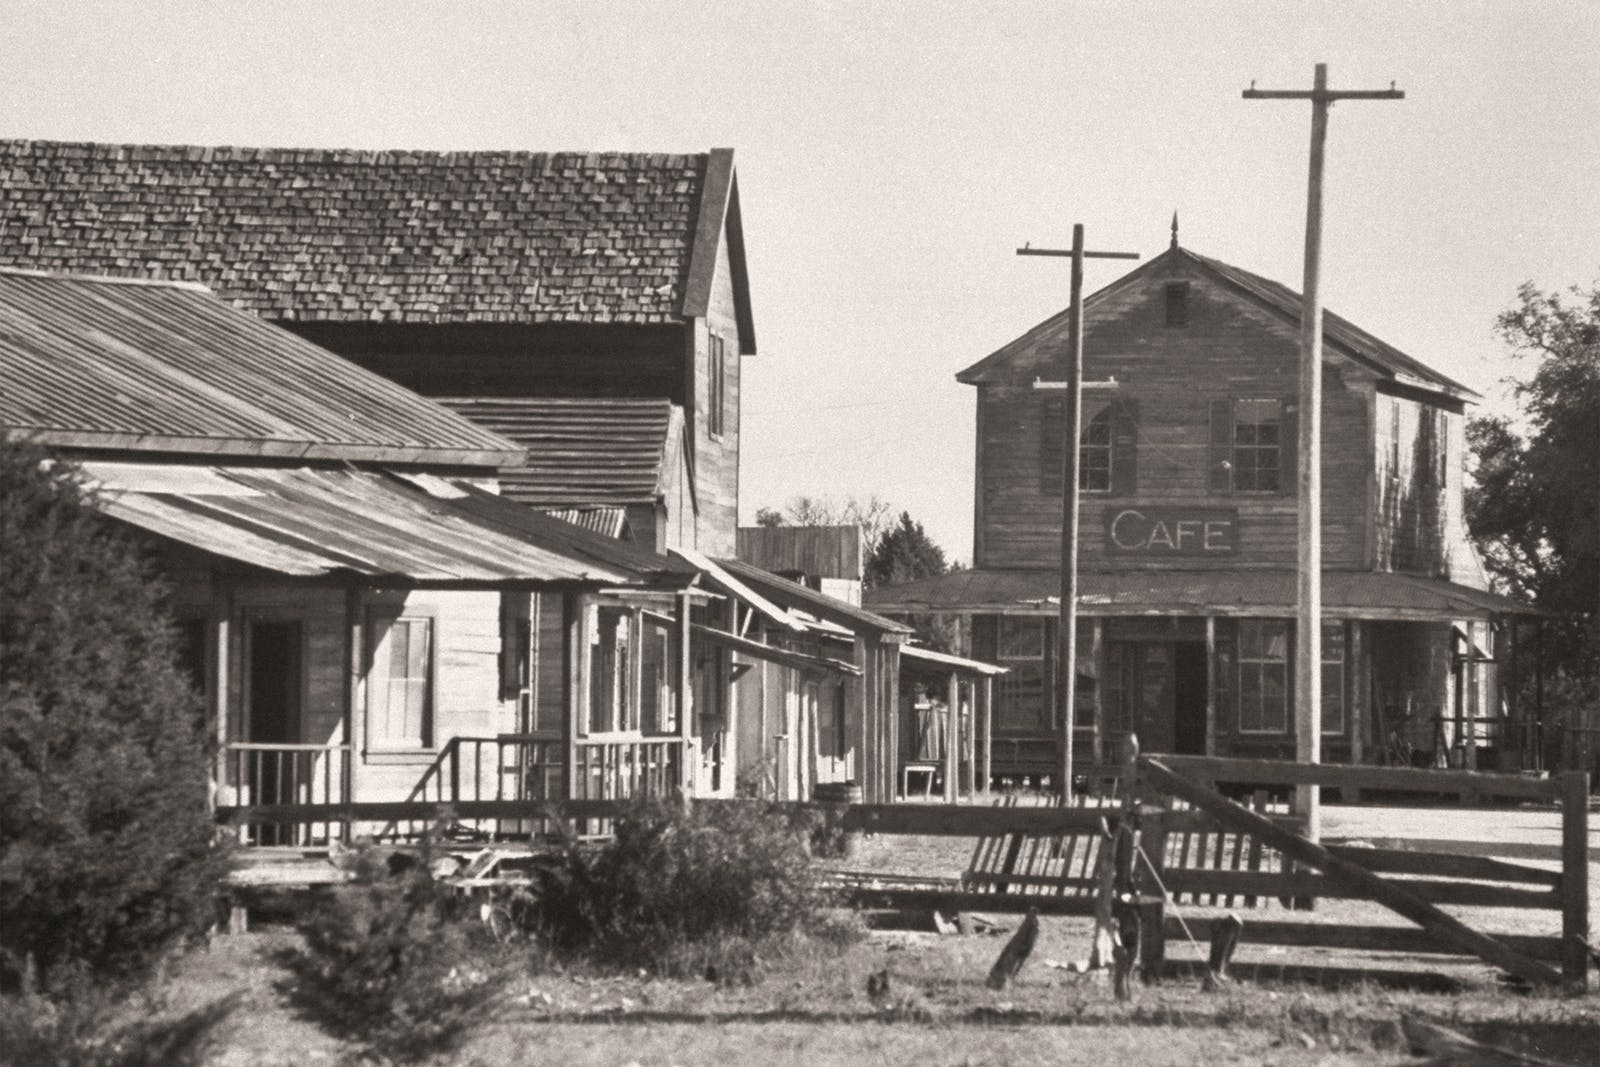 Luck, the western town movie set on Willie's property, which was seized by the IRS and put up for sale.